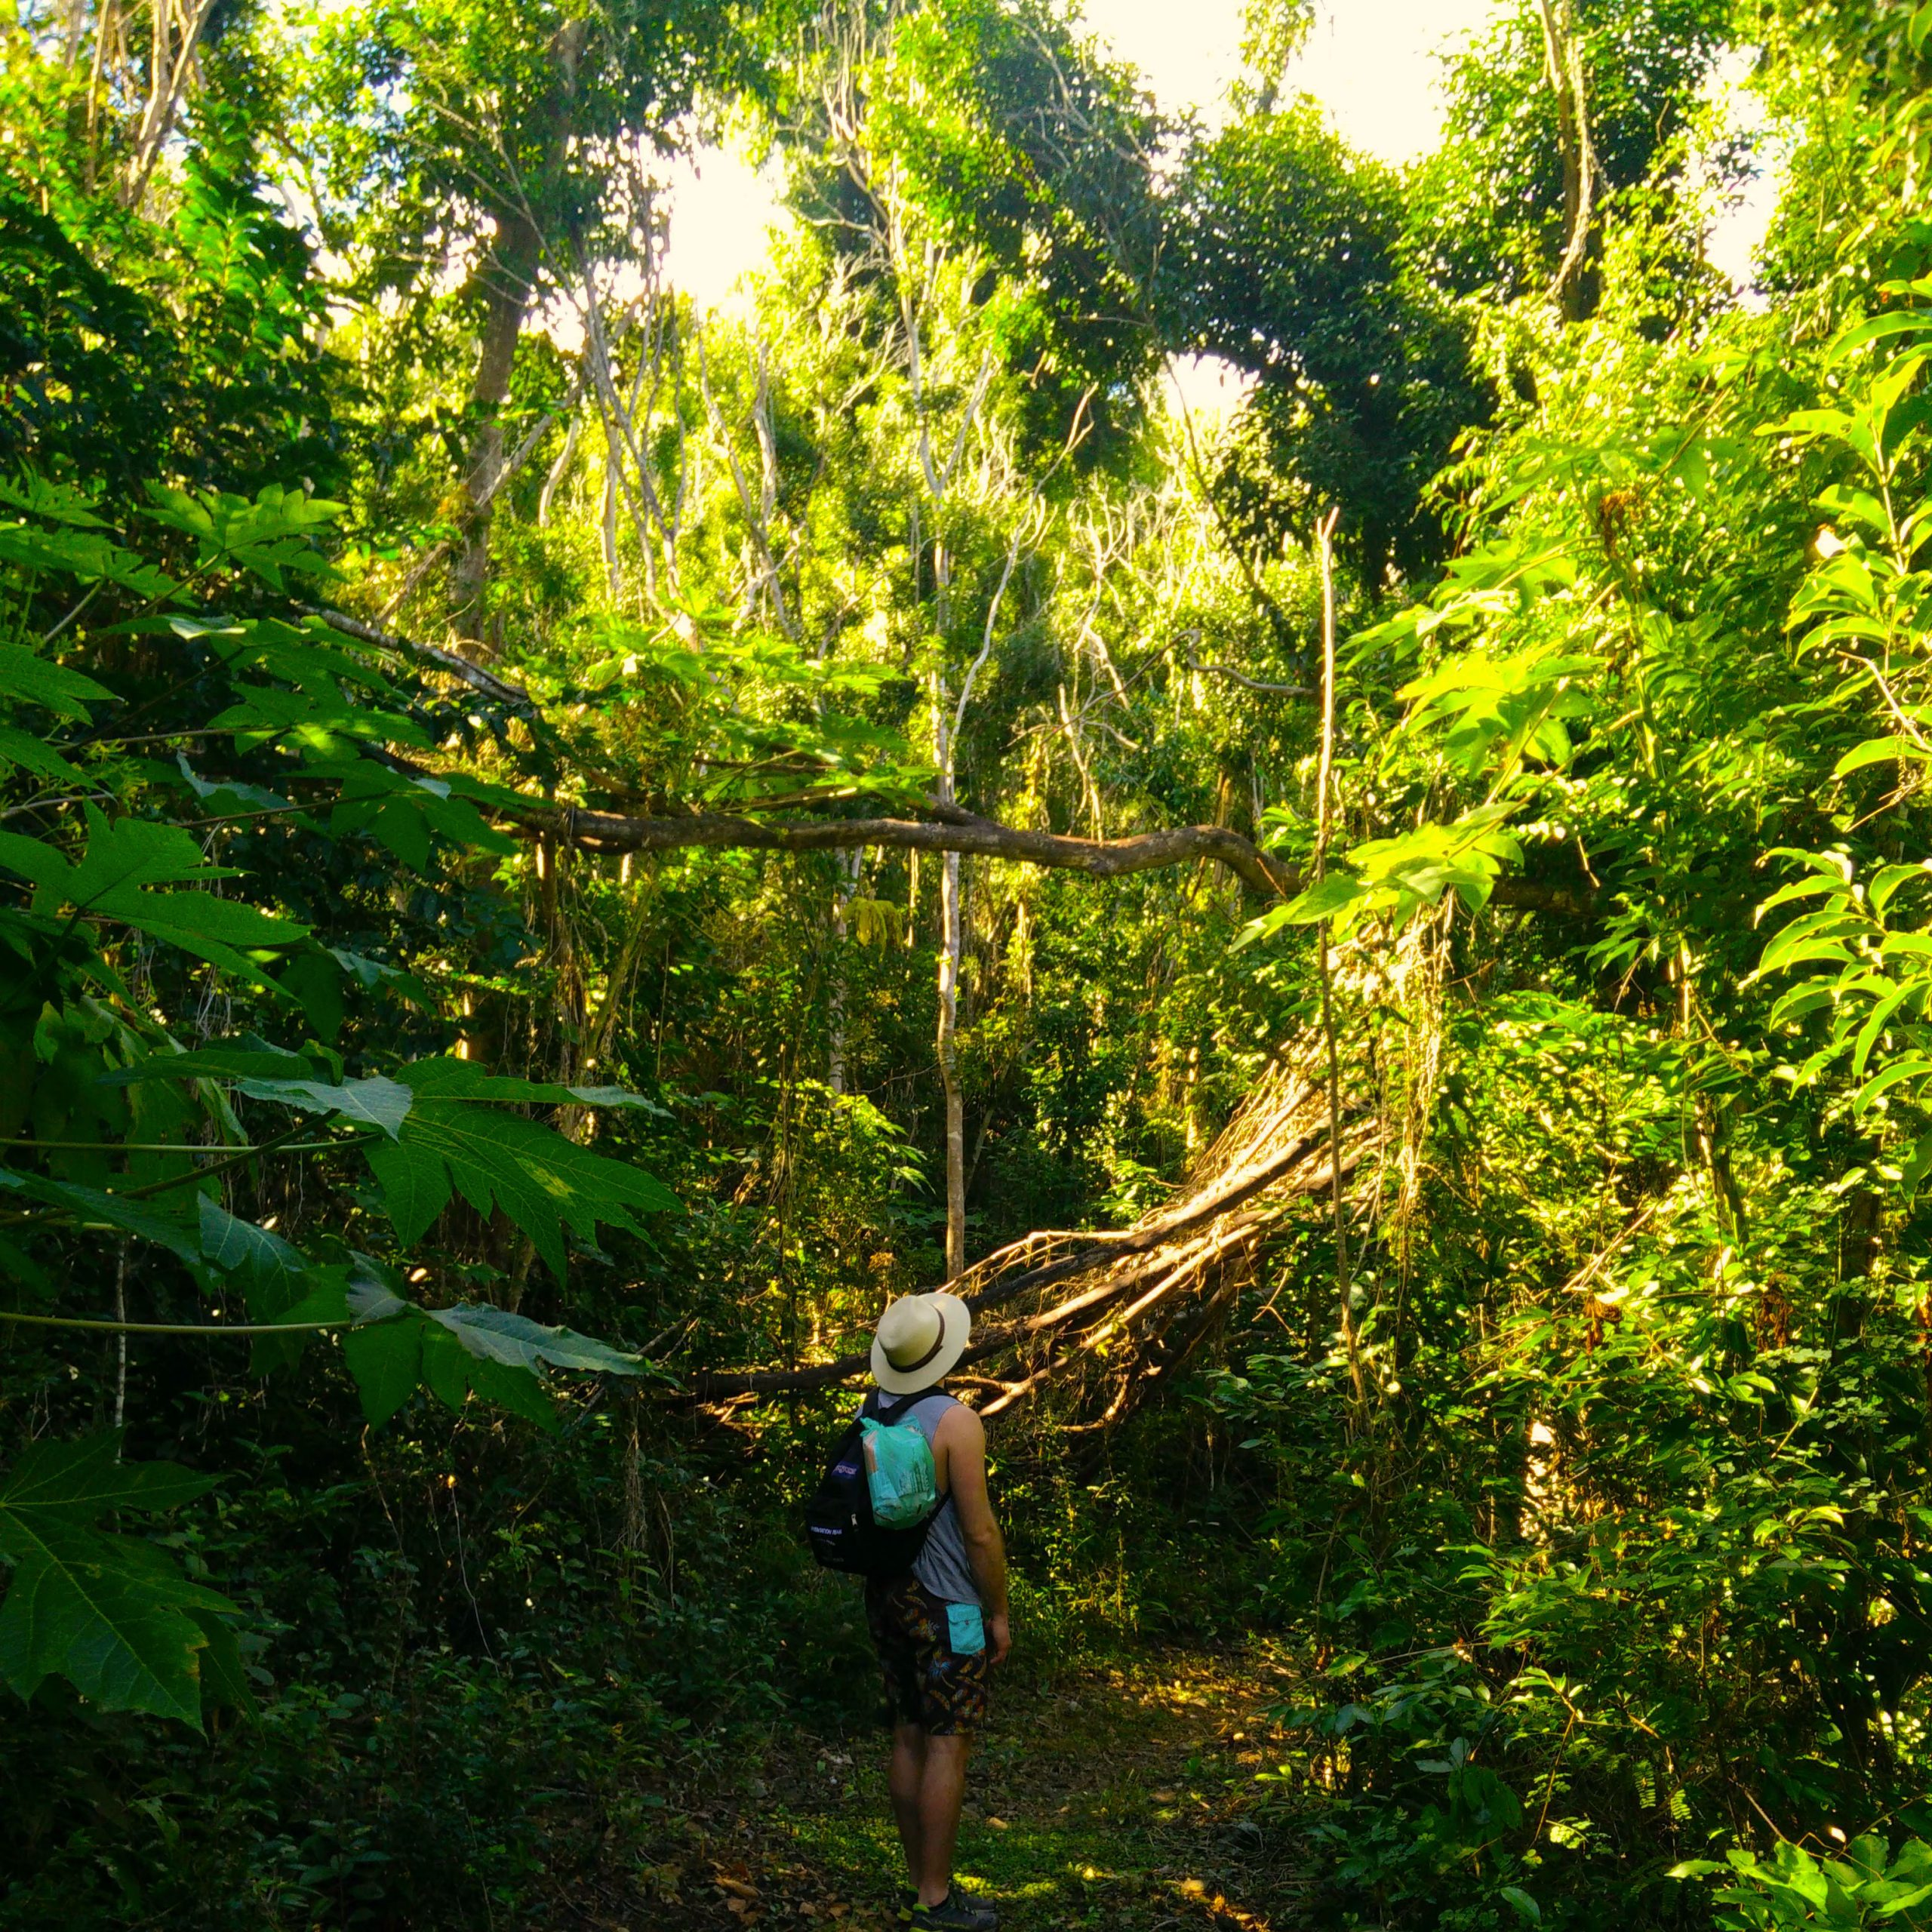 A man staring up at tropical forest with the sun hitting the tops of the trees and a path ahead.